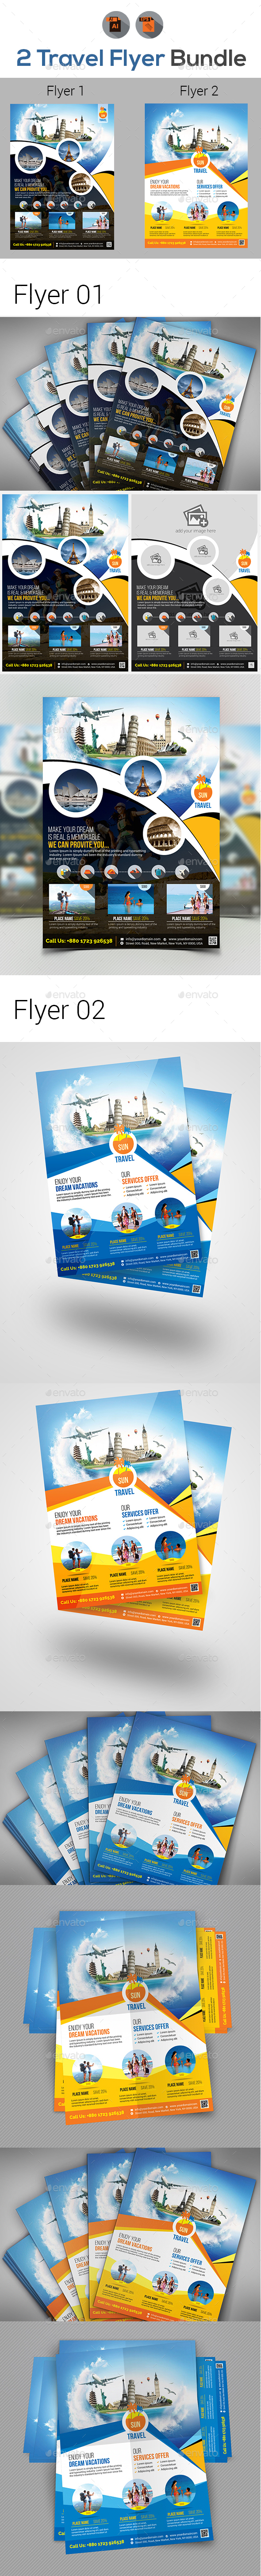 Travel Flyer Bundle V5 - Corporate Flyers